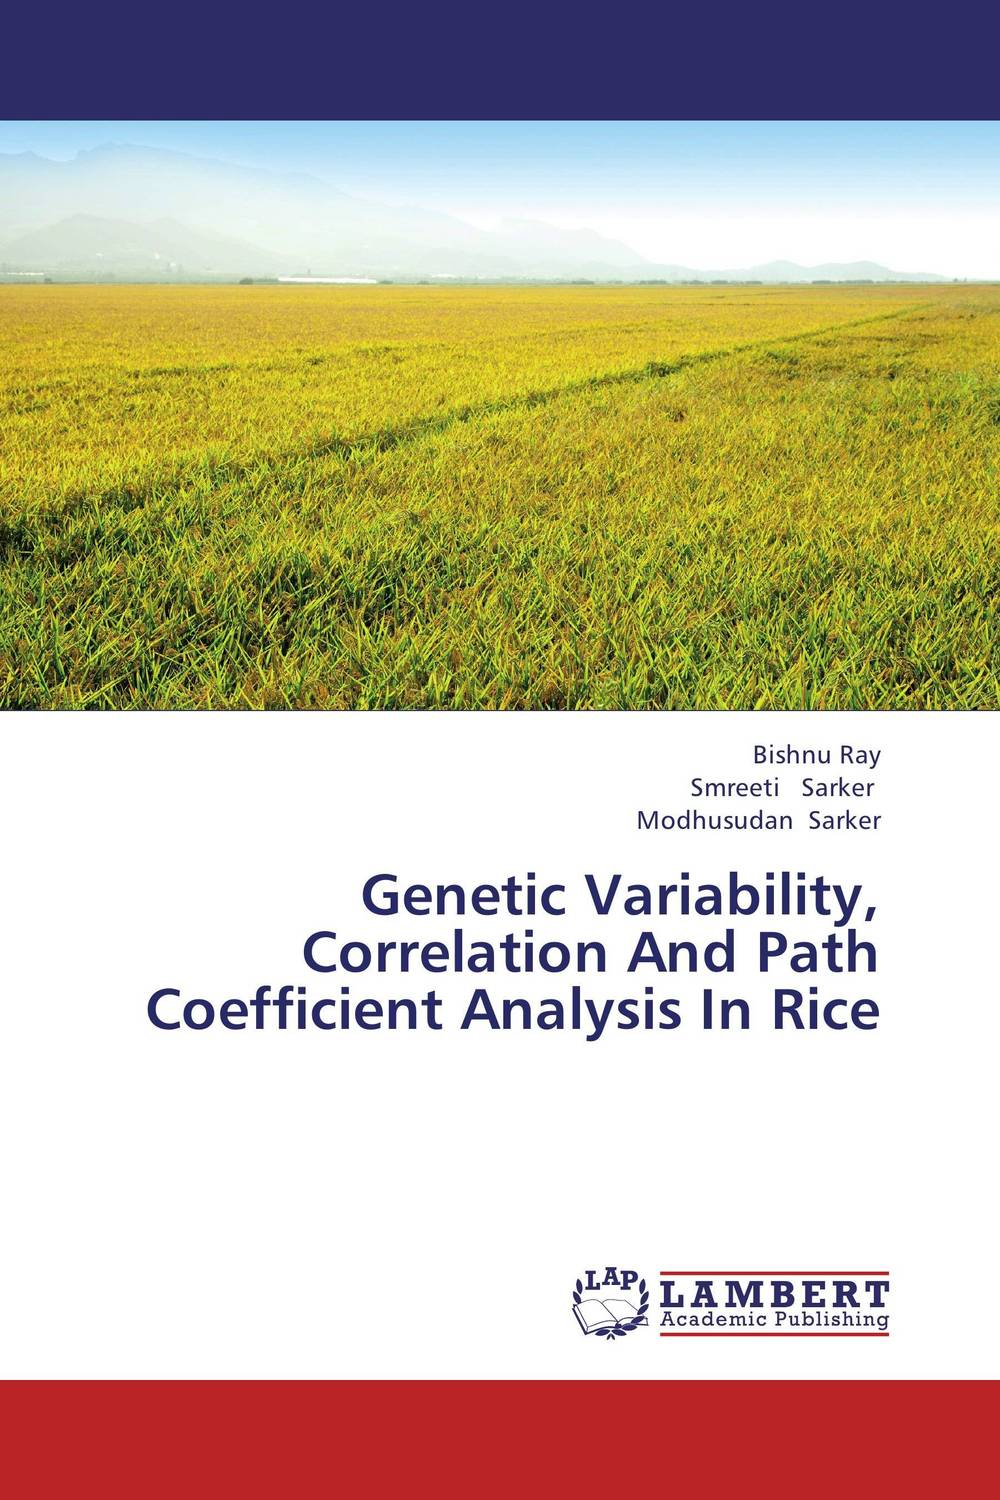 Genetic Variability, Correlation And Path Coefficient Analysis In Rice plant genetic resources